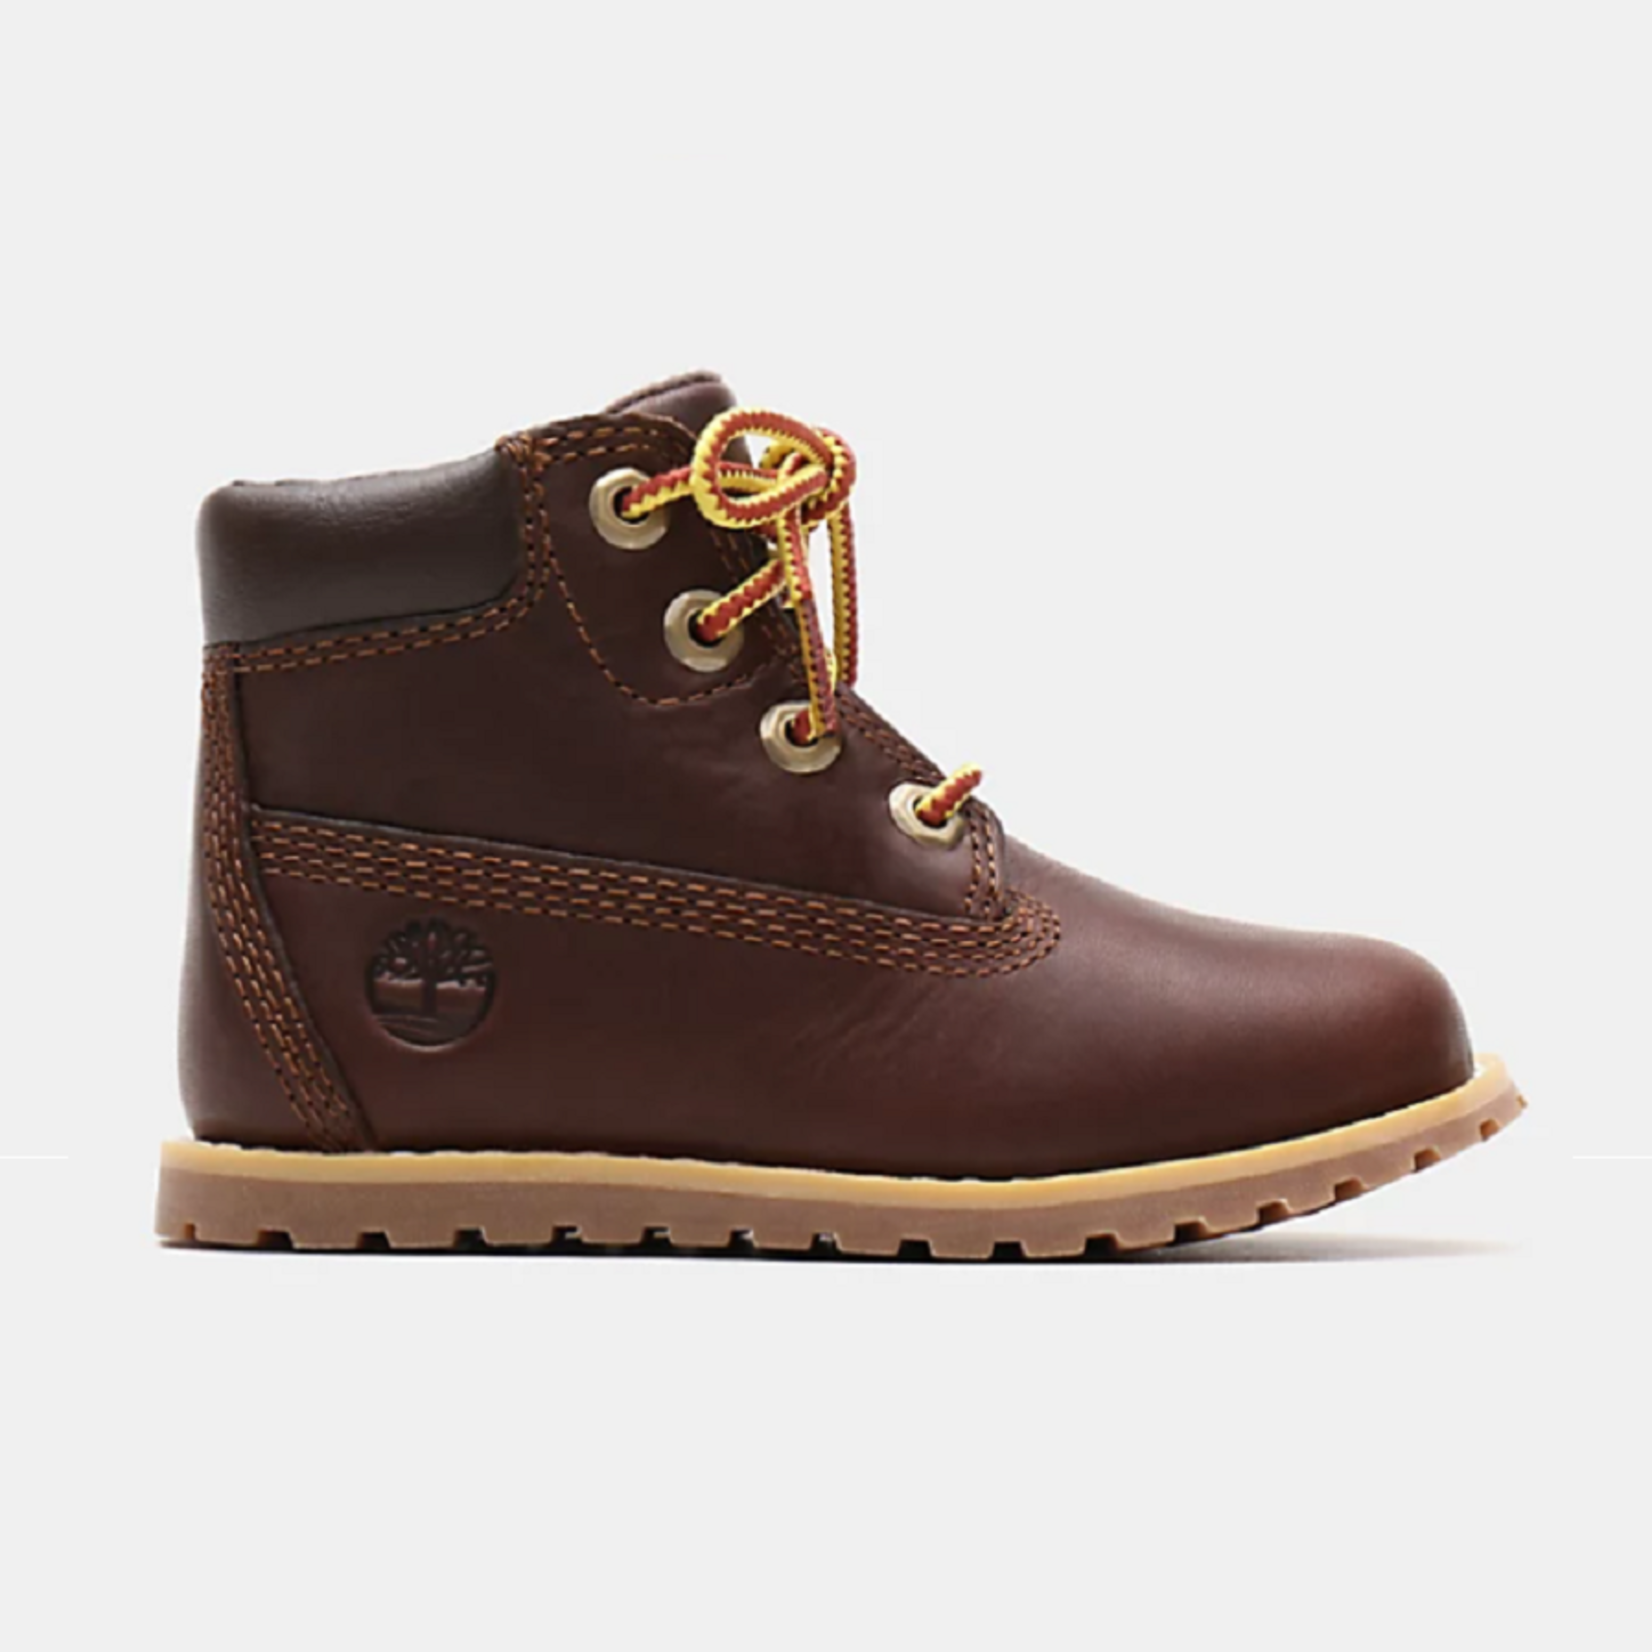 Timberland POKEY PINE 6 INCH BOOT FOR TODDLER IN BROWN